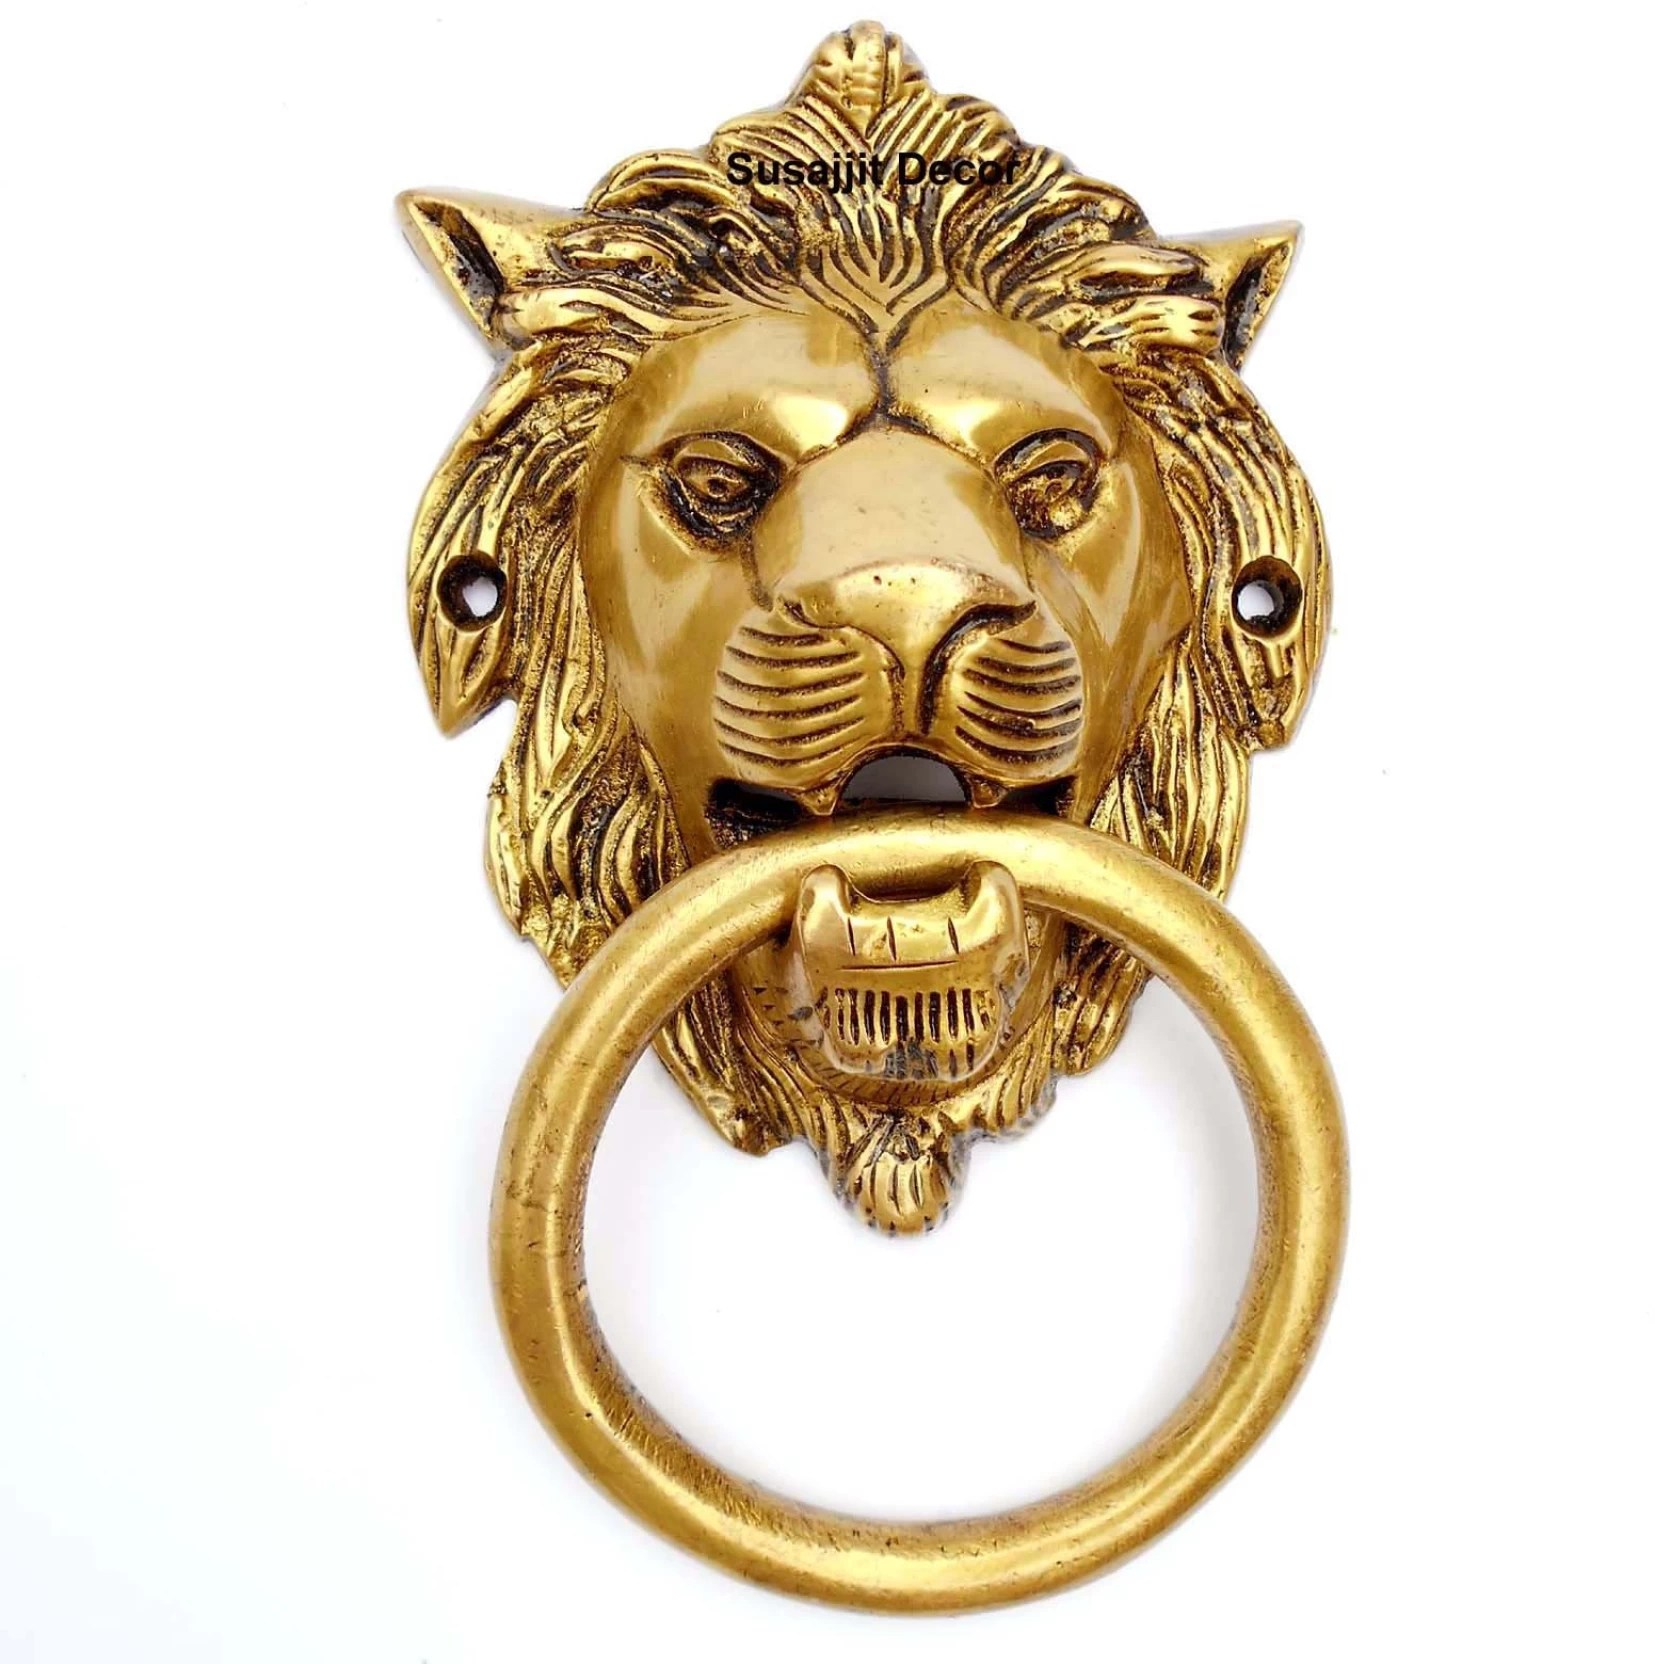 medium resolution of susajjit decor brass door knocker lion face in antique yellow finish for your door brass door knocker antique brass